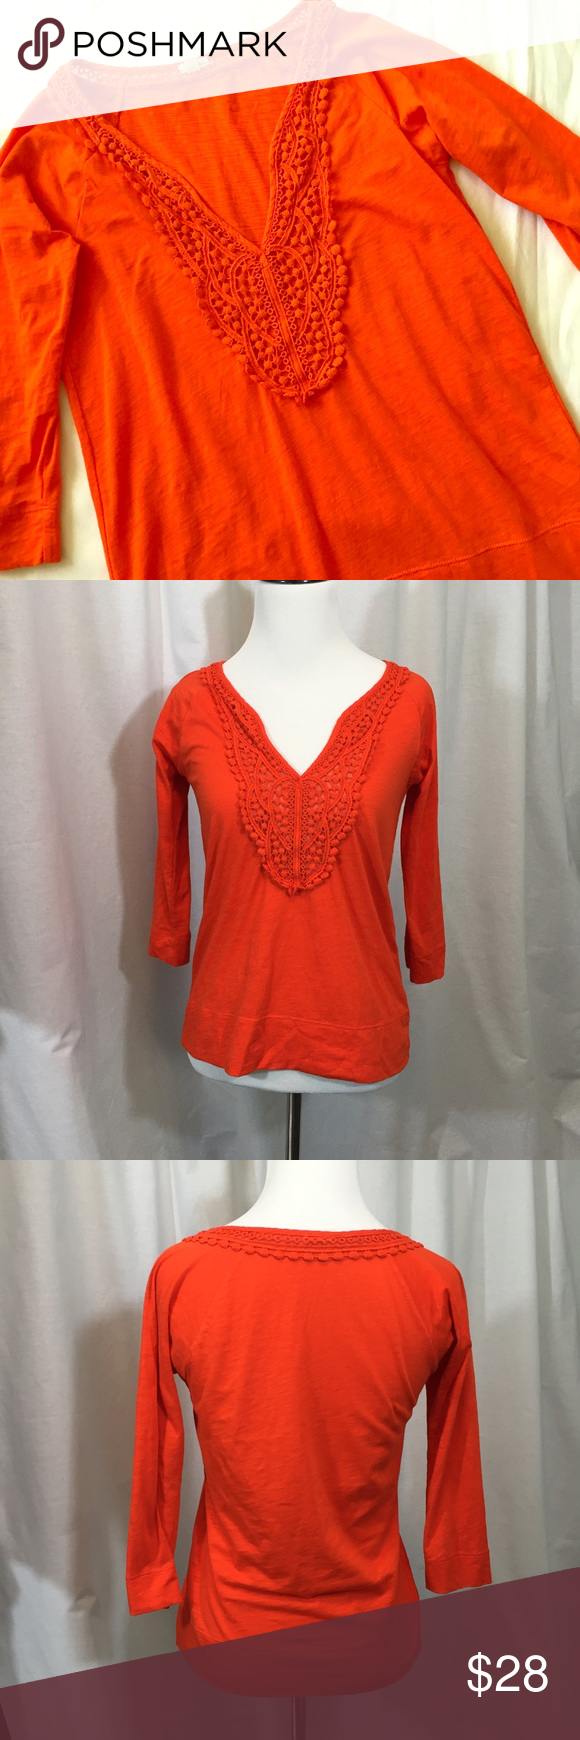 1a6e43f5f43c4a J. Crew Lace Pompom Detail V Neck Top Orange EUC vibrant orange 3 4 sleeve  top with lace detail around neck. No stains or imperfections.